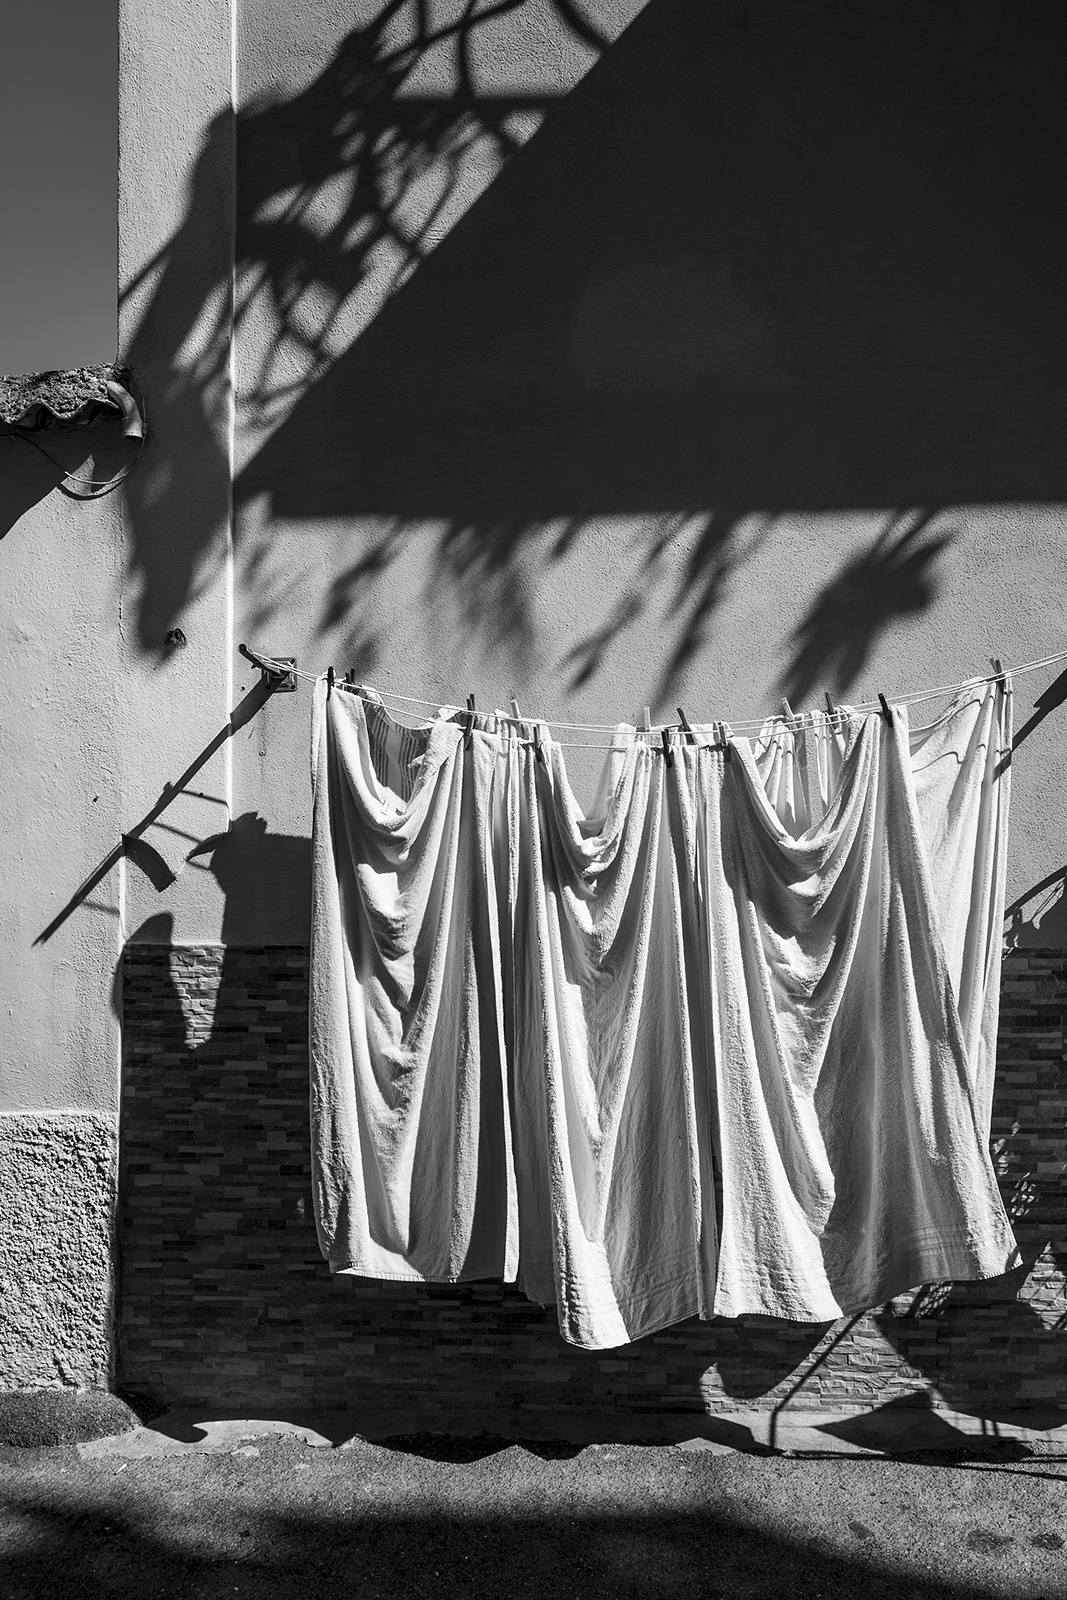 Towels drying on washing line in street, Ischia town, Isle of Ischia, Italy Black and white Monochrome urban street abstract portrait ©P. Maton 2018 eyeteeth.net